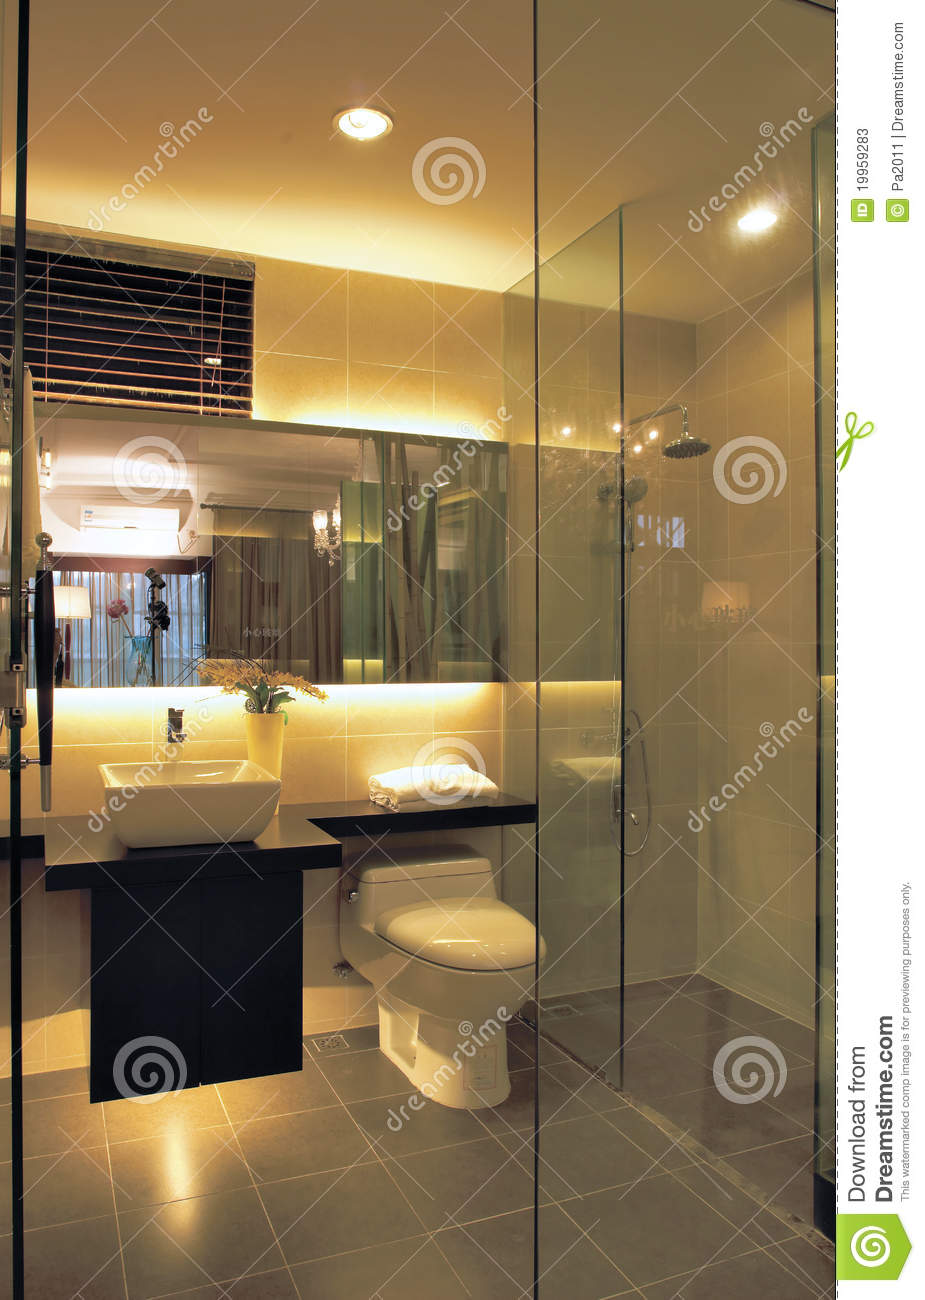 Marble Bathroom Stock Image Image Of Sparkling Image